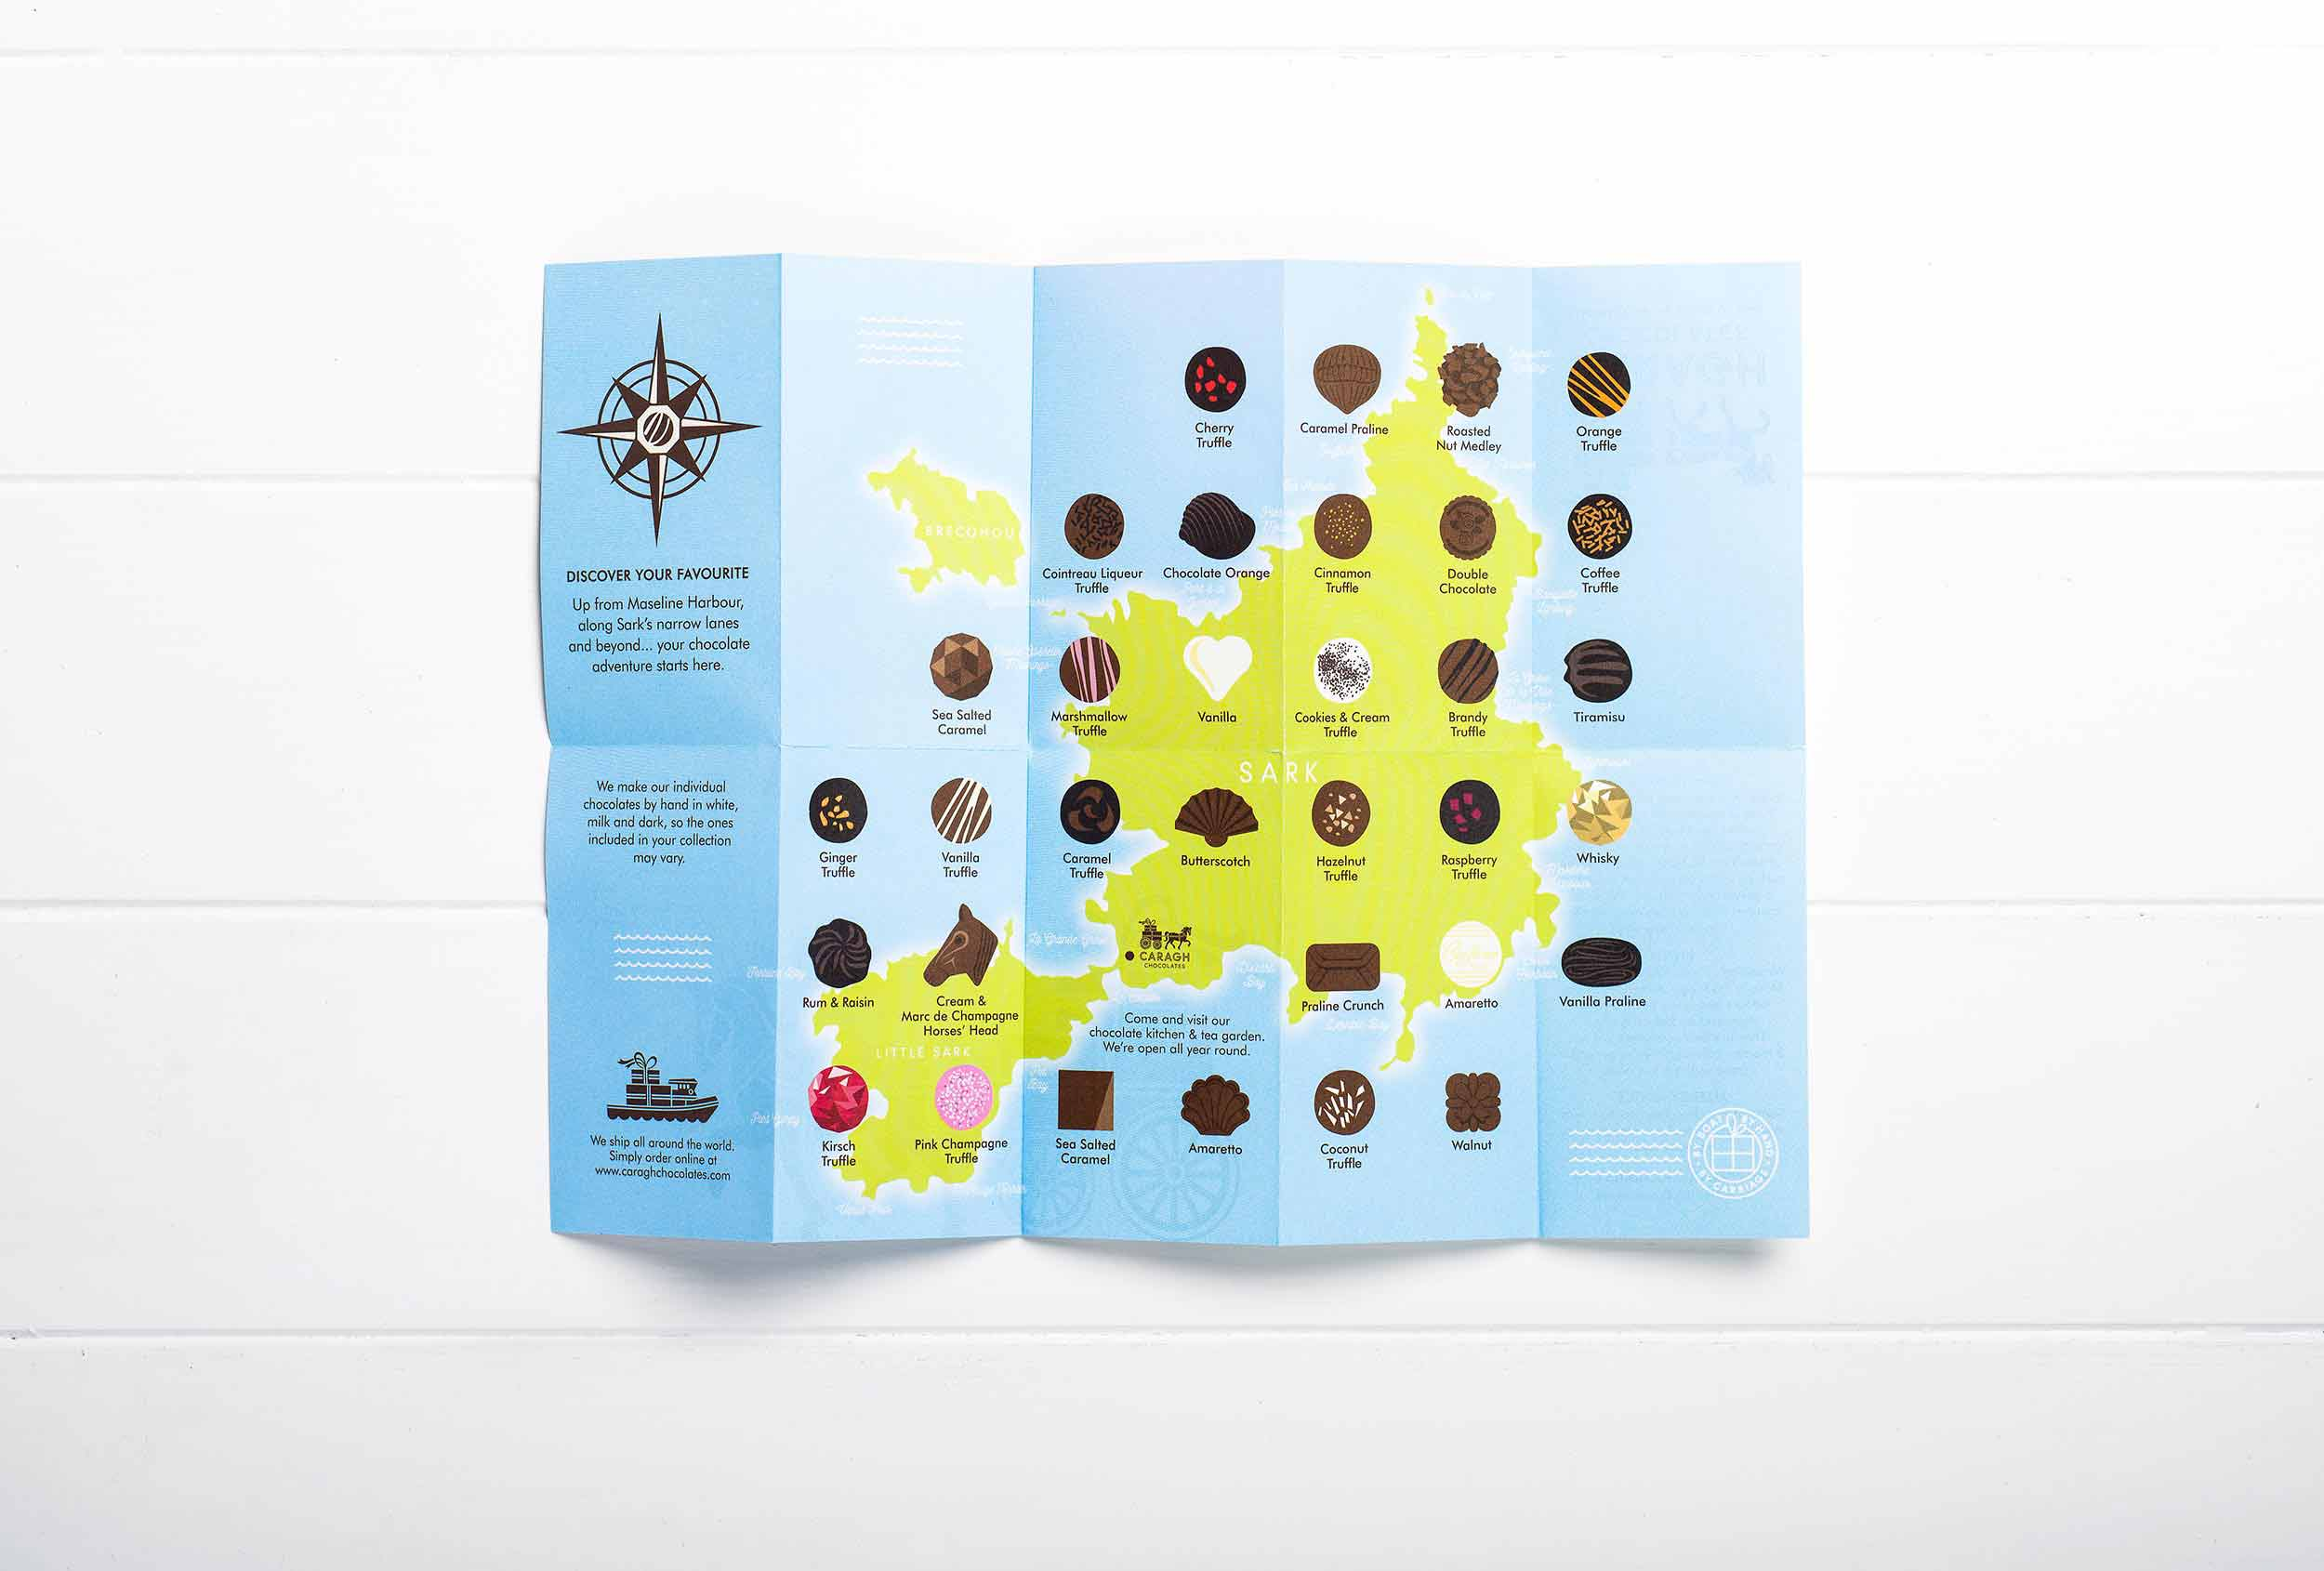 Chocolate menu for inside packaging, designed as an island map for Caragh Chocolates.